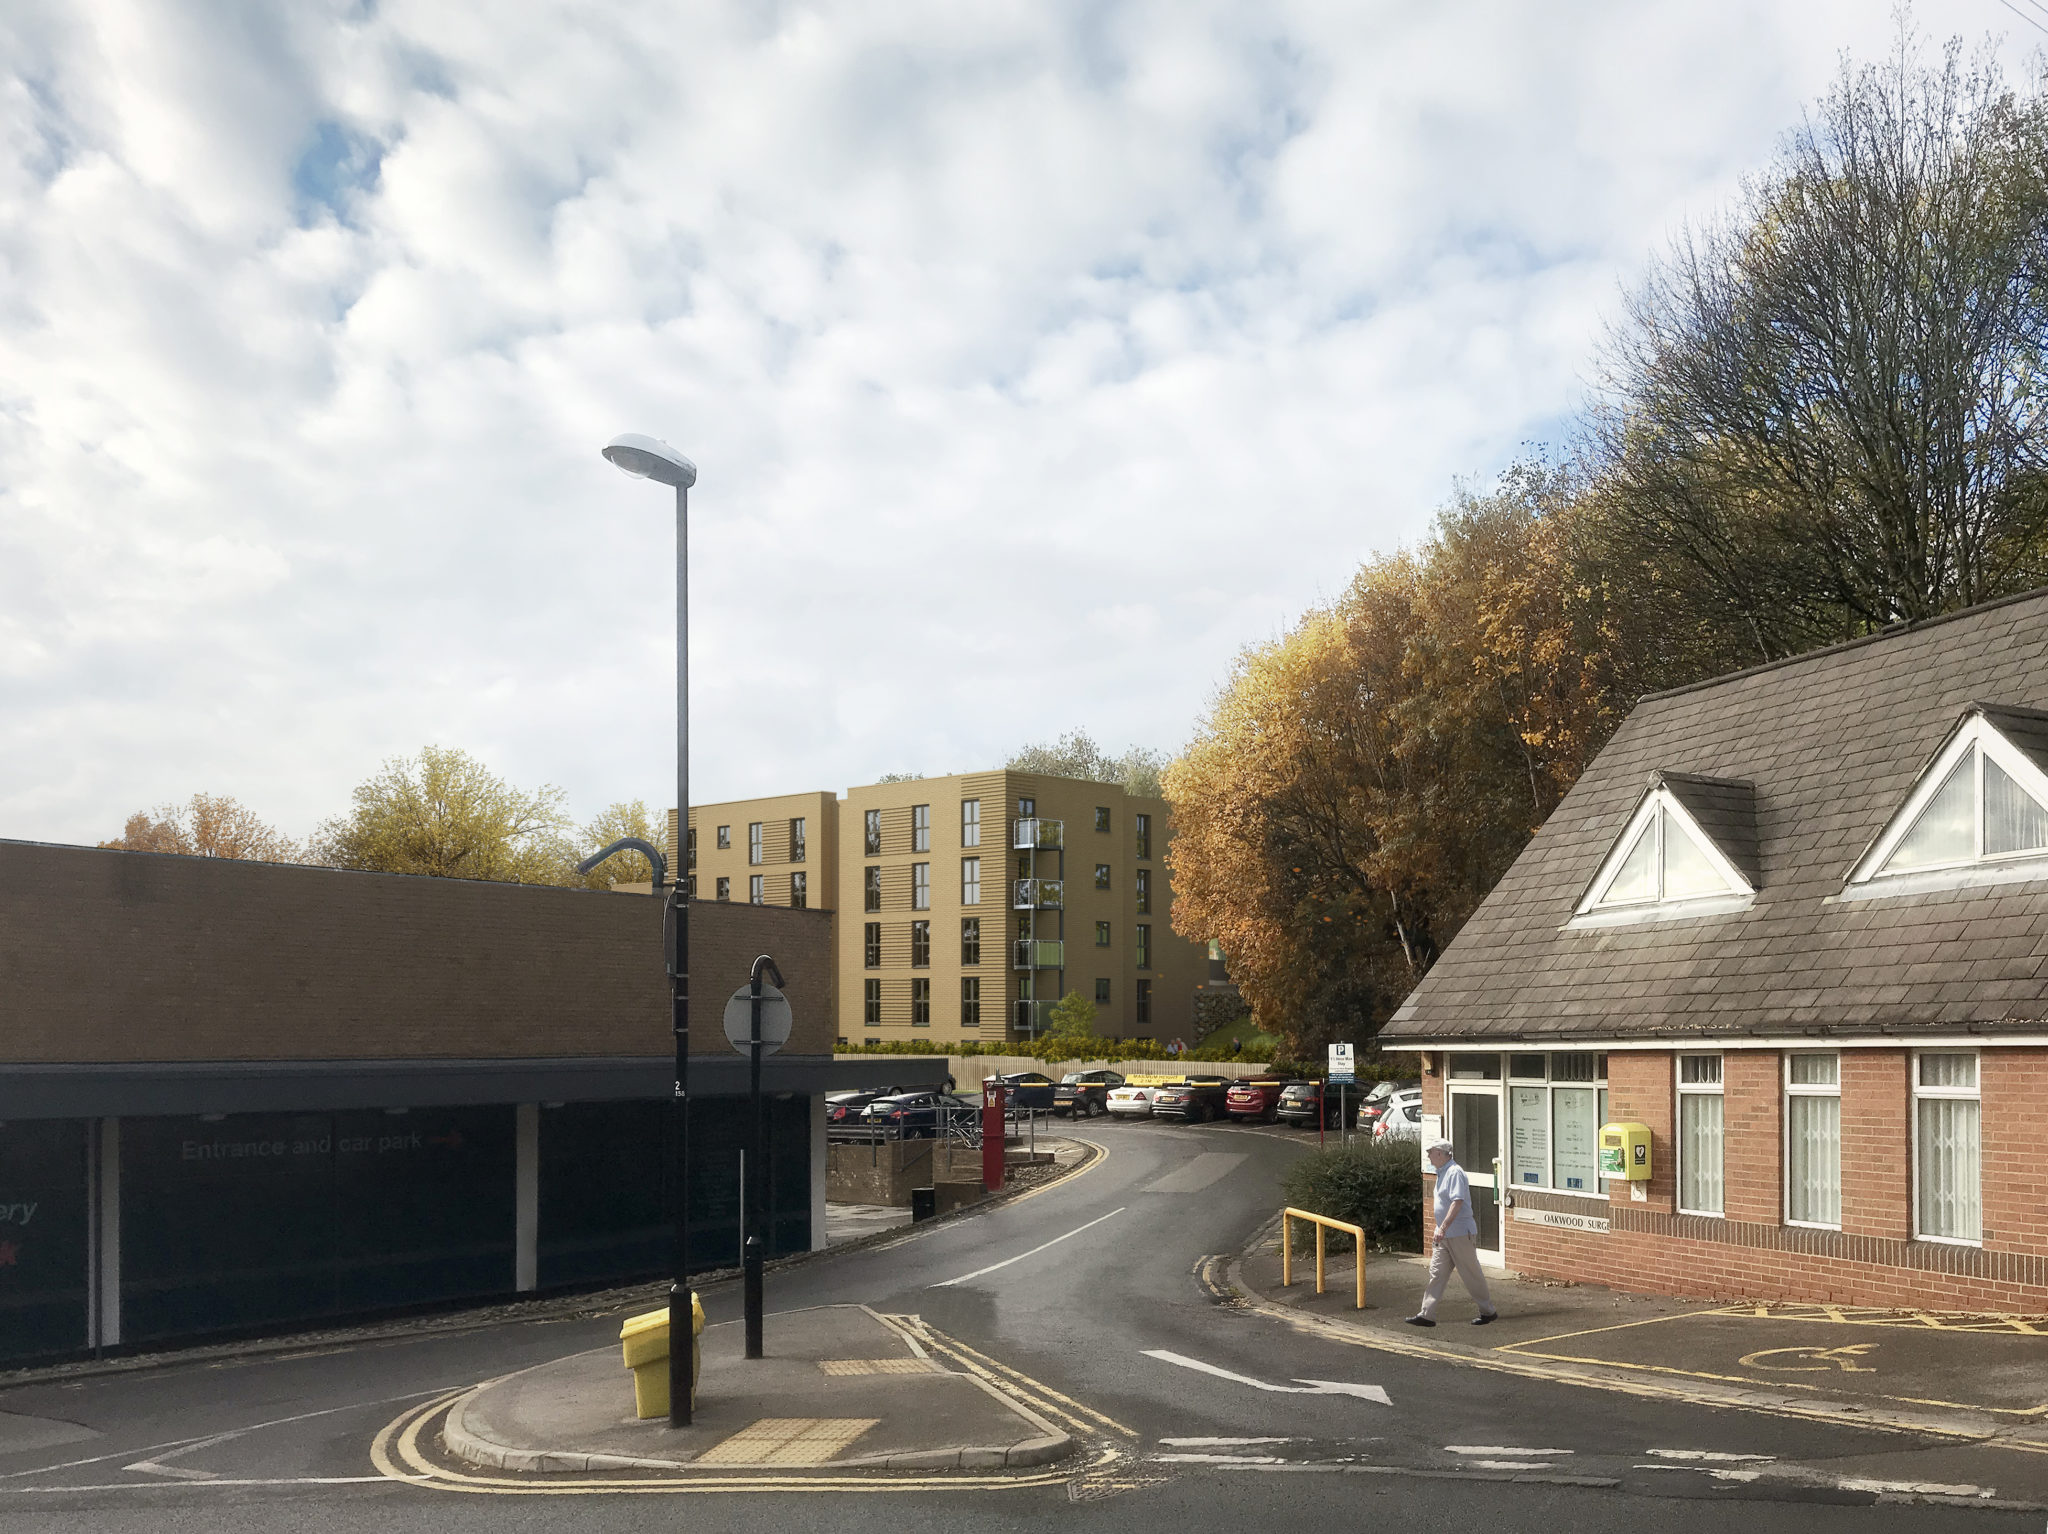 Planning application submitted for a new retirement living scheme in Oakwood, Leeds